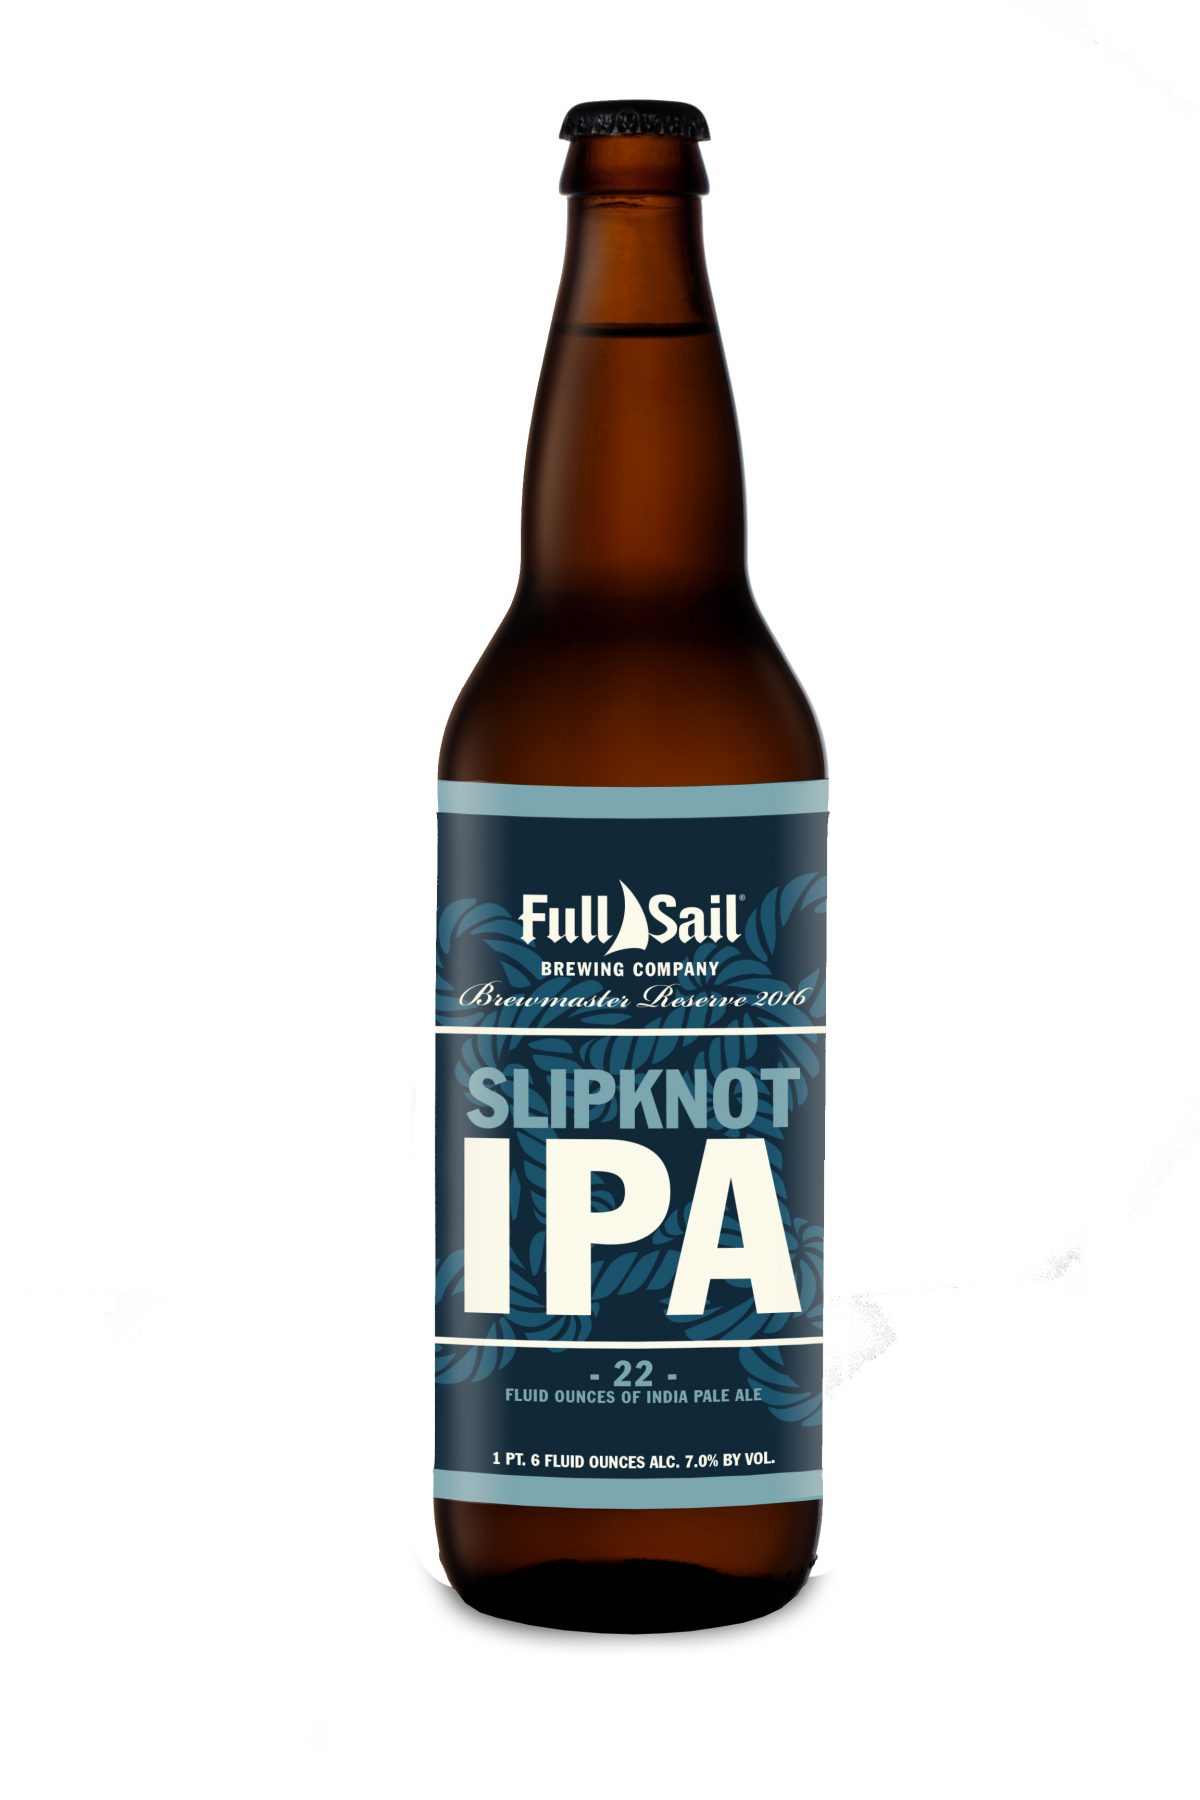 Slipknot IPA / Full Sail Brewing